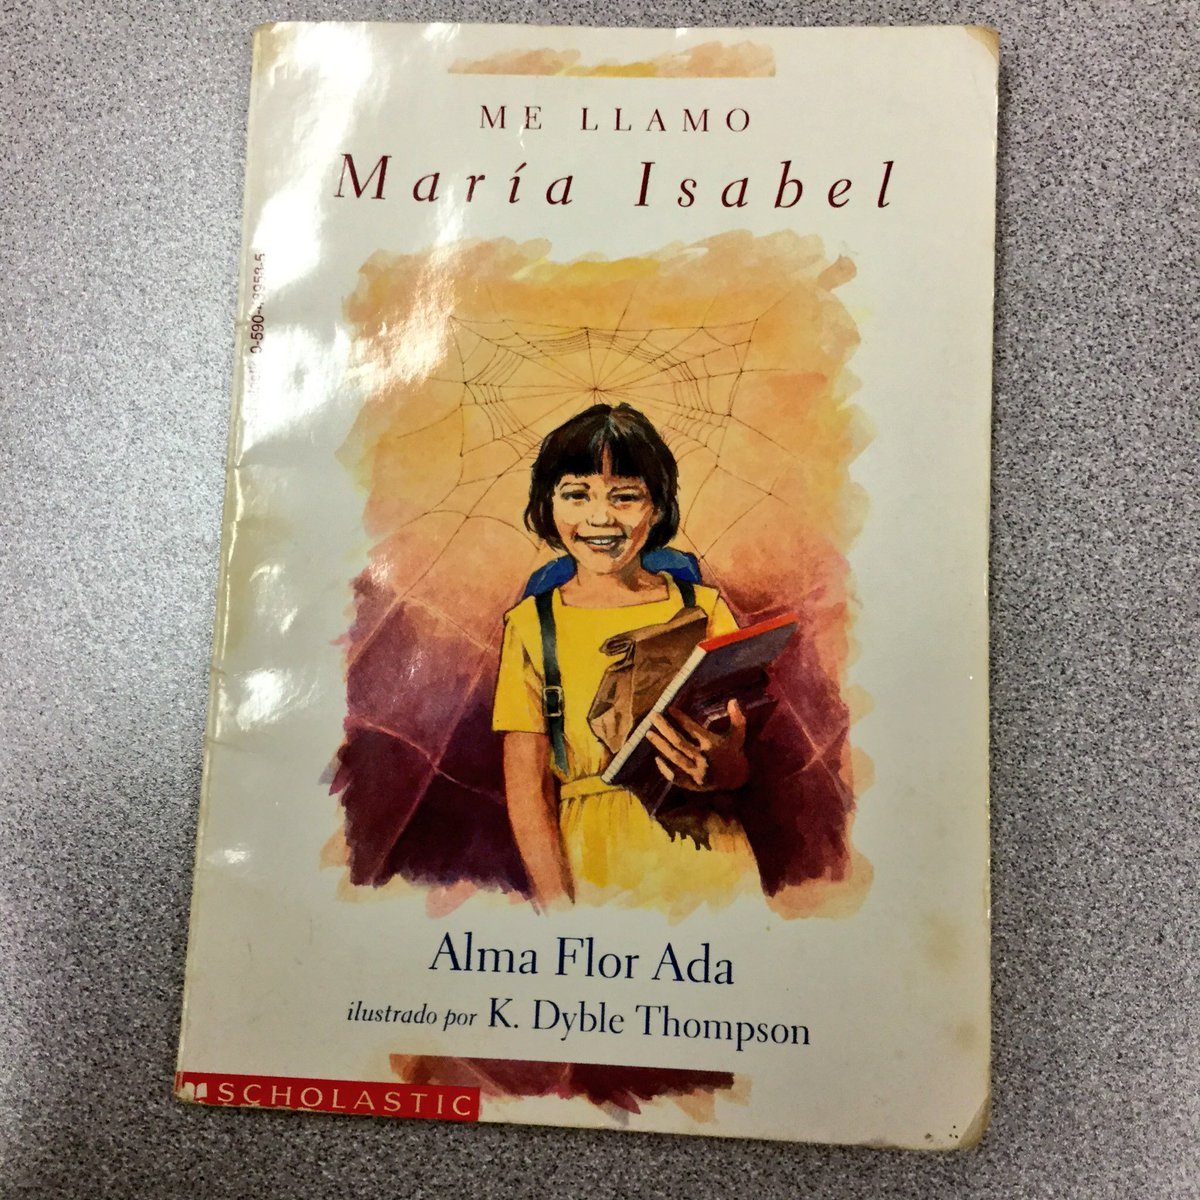 test Twitter Media - @mrblglvz The books I recall reading when I was in school were those about different cultures and with characters that I could relate to as a #Chicana  As a reluctant reader, I realized it was empowering for me to choose what I wanted 2 read! #D100Chat https://t.co/Q09V7fF8RZ